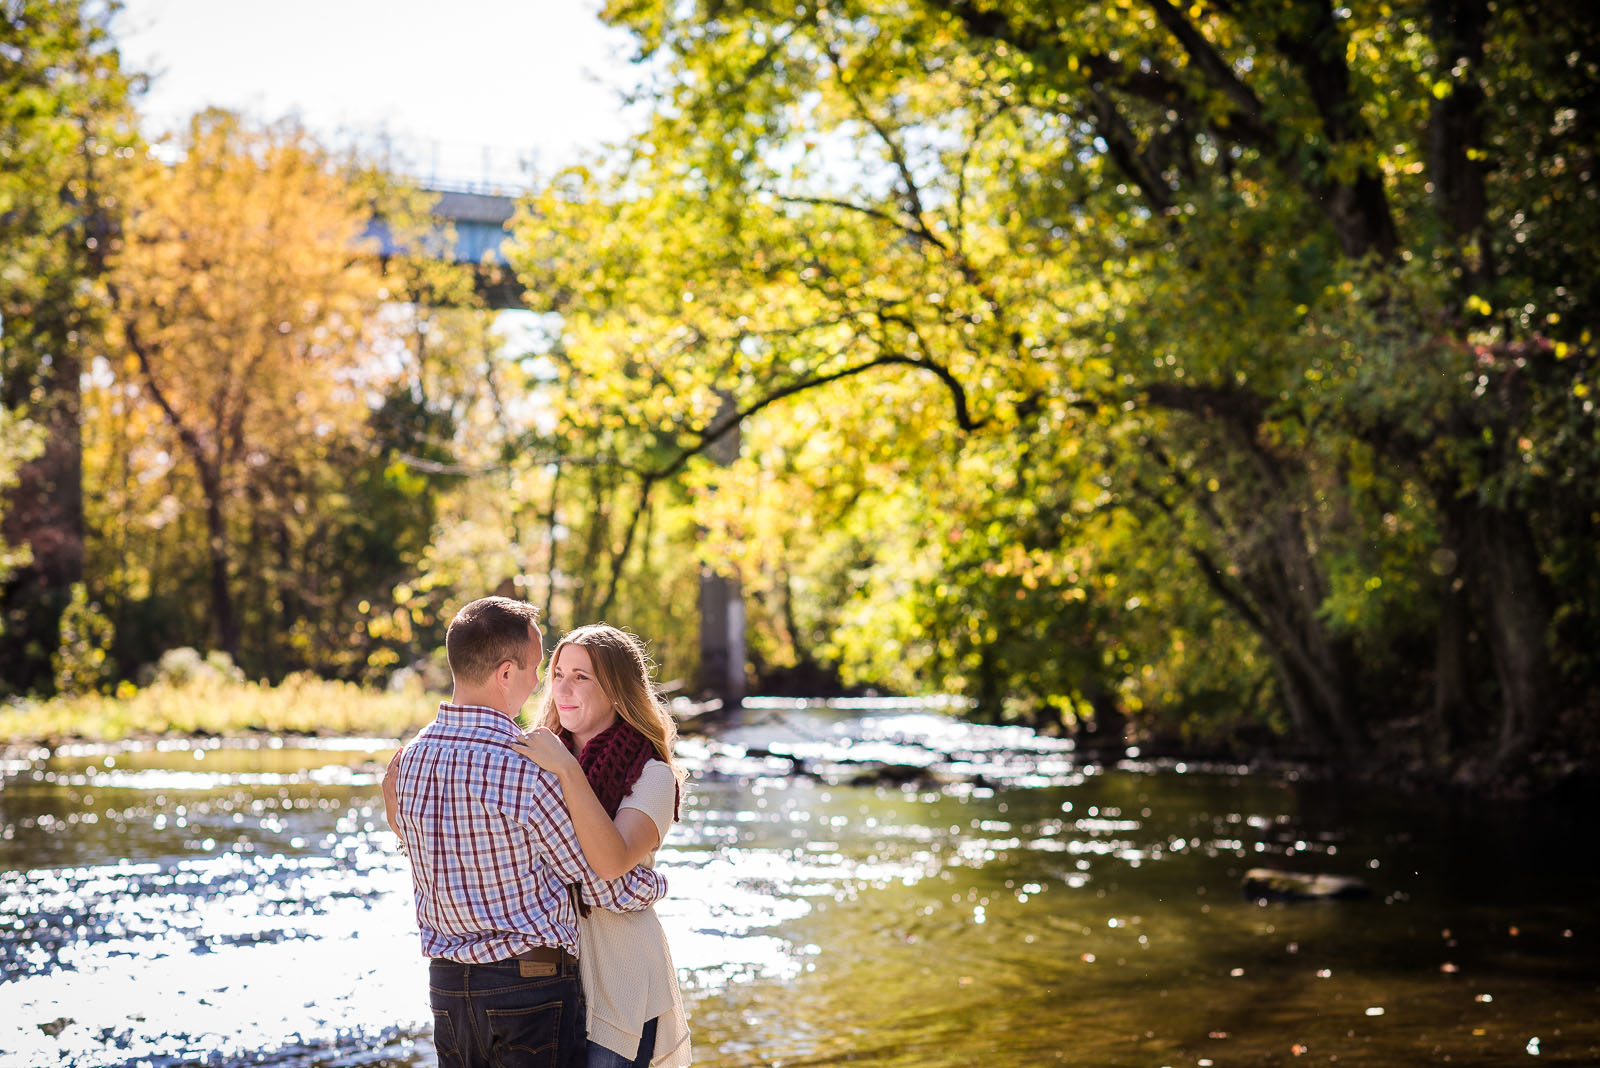 Eric_and_Christy_Photography_Blog_2017_Best_Engagement-26